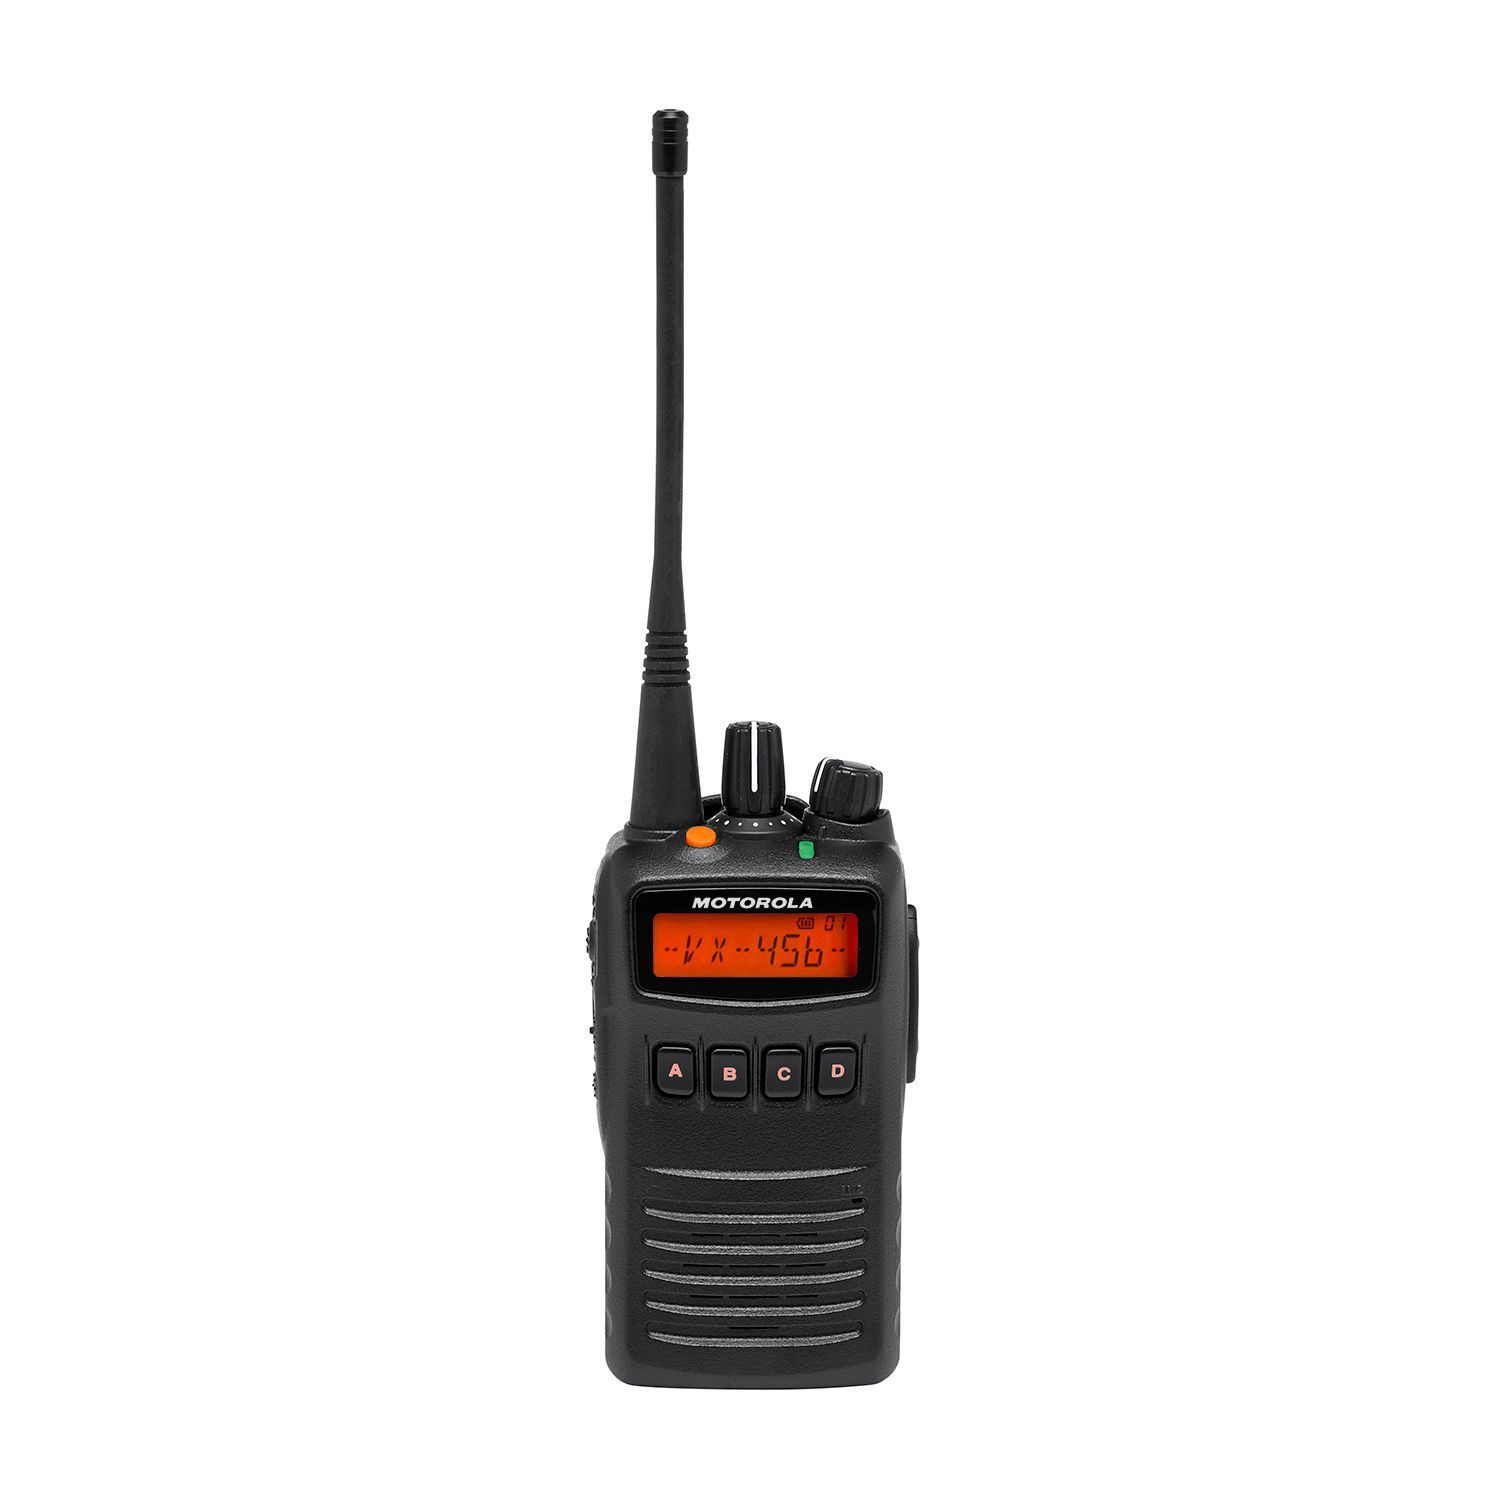 Motorola VX-456 Portable UHF 450-520MHz 5W 80 CB + 512 Ch includes Antenna, Hi-Cap Battery, Belt Clip & Charger